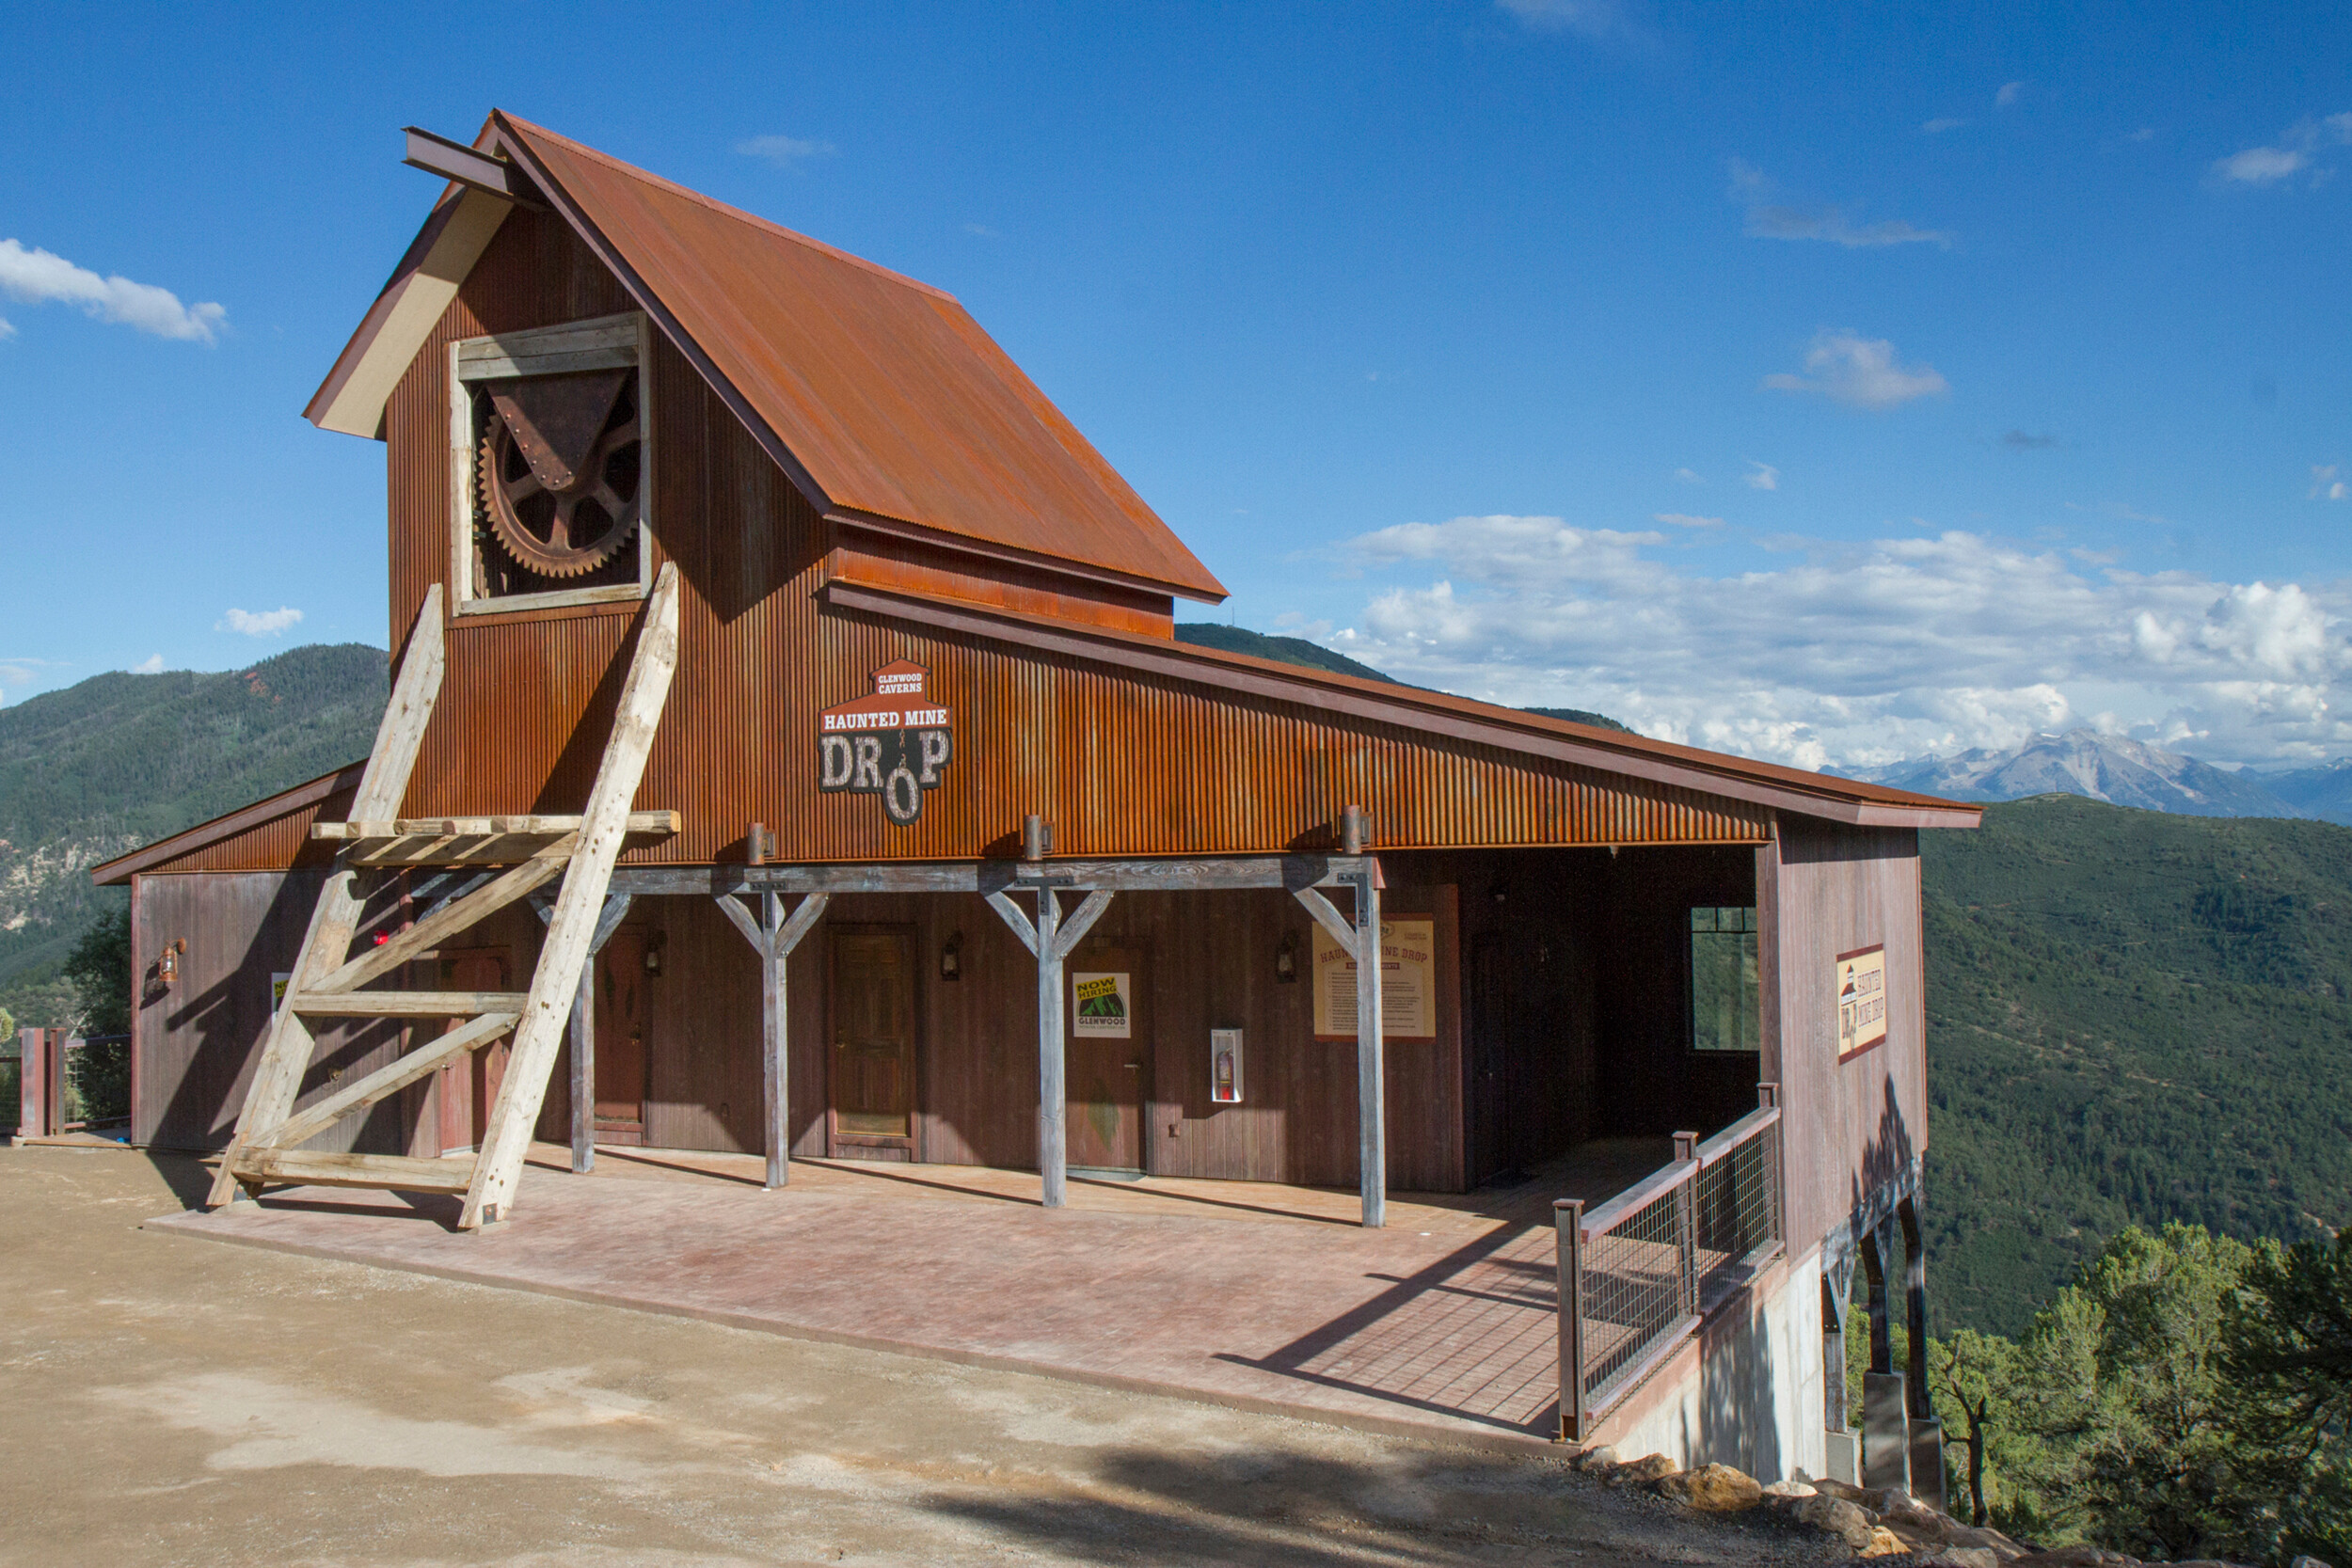 <i>Chelsea Self/AP/FILE</i><br/>The Haunted Mine Drop is shown in this July 2017 file photo at Glenwood Caverns Adventure Park in Glenwood Springs